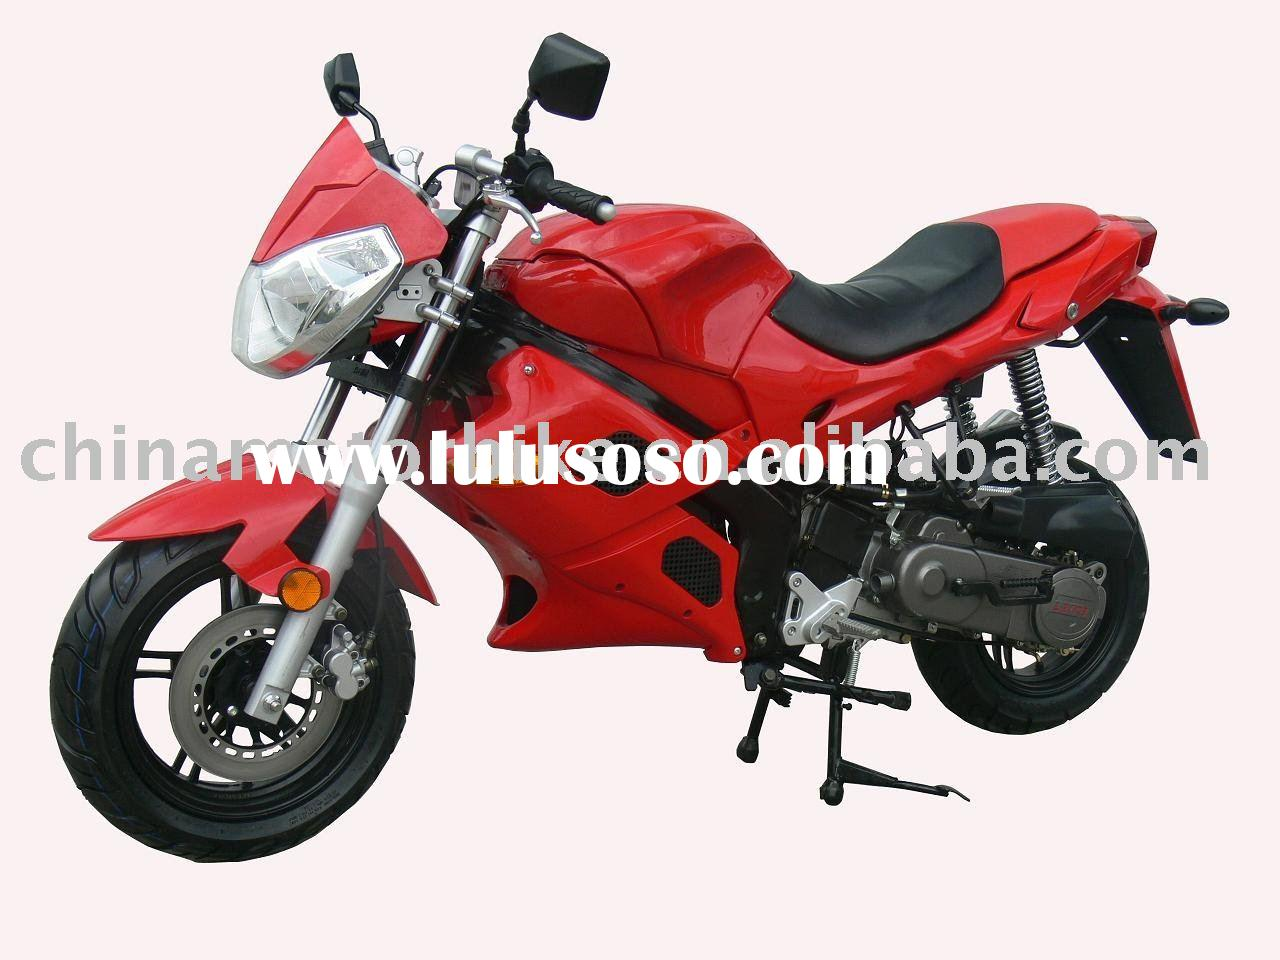 50cc -180cc sports bike/motorcycle/racing bike/2 stroke scooter